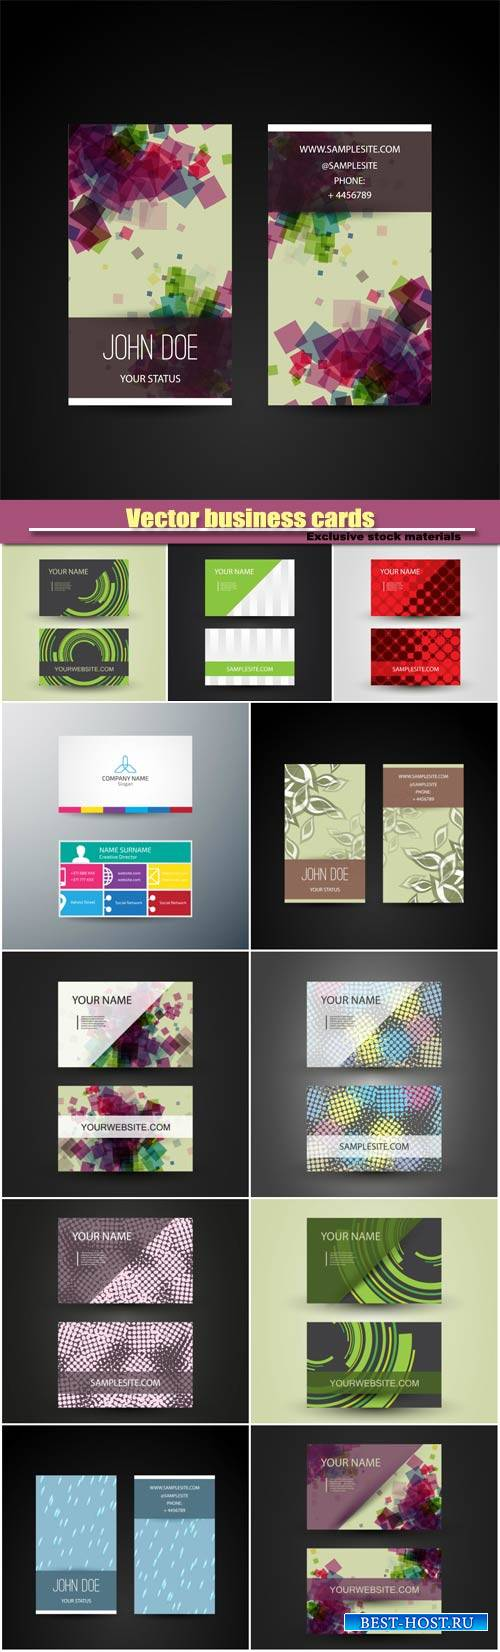 Vector business cards with abstract patterns